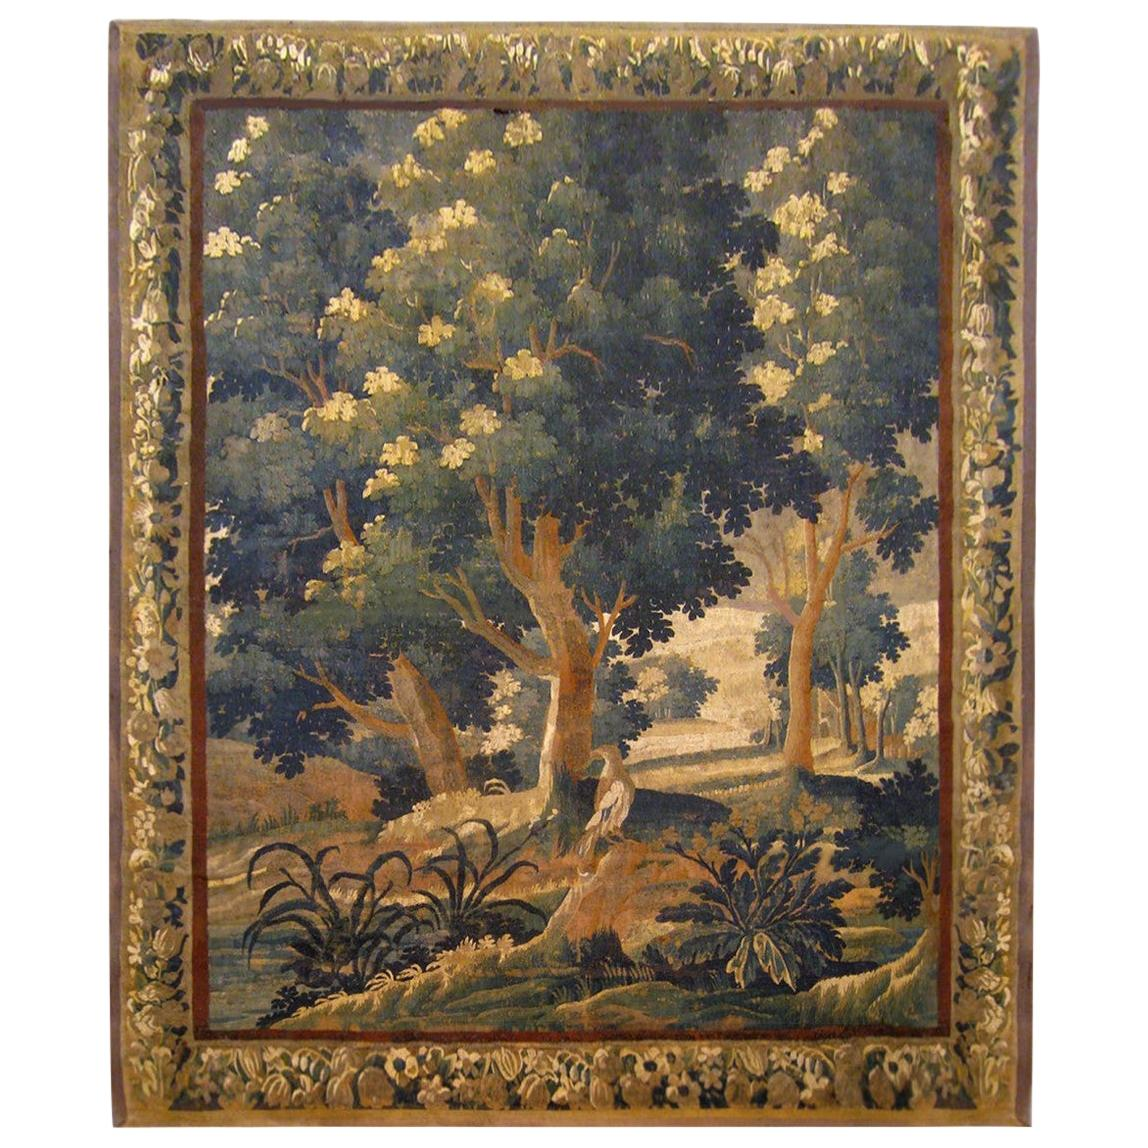 18th Century Flemish Verdure Tapestry, with a Bird in a Woodland Setting